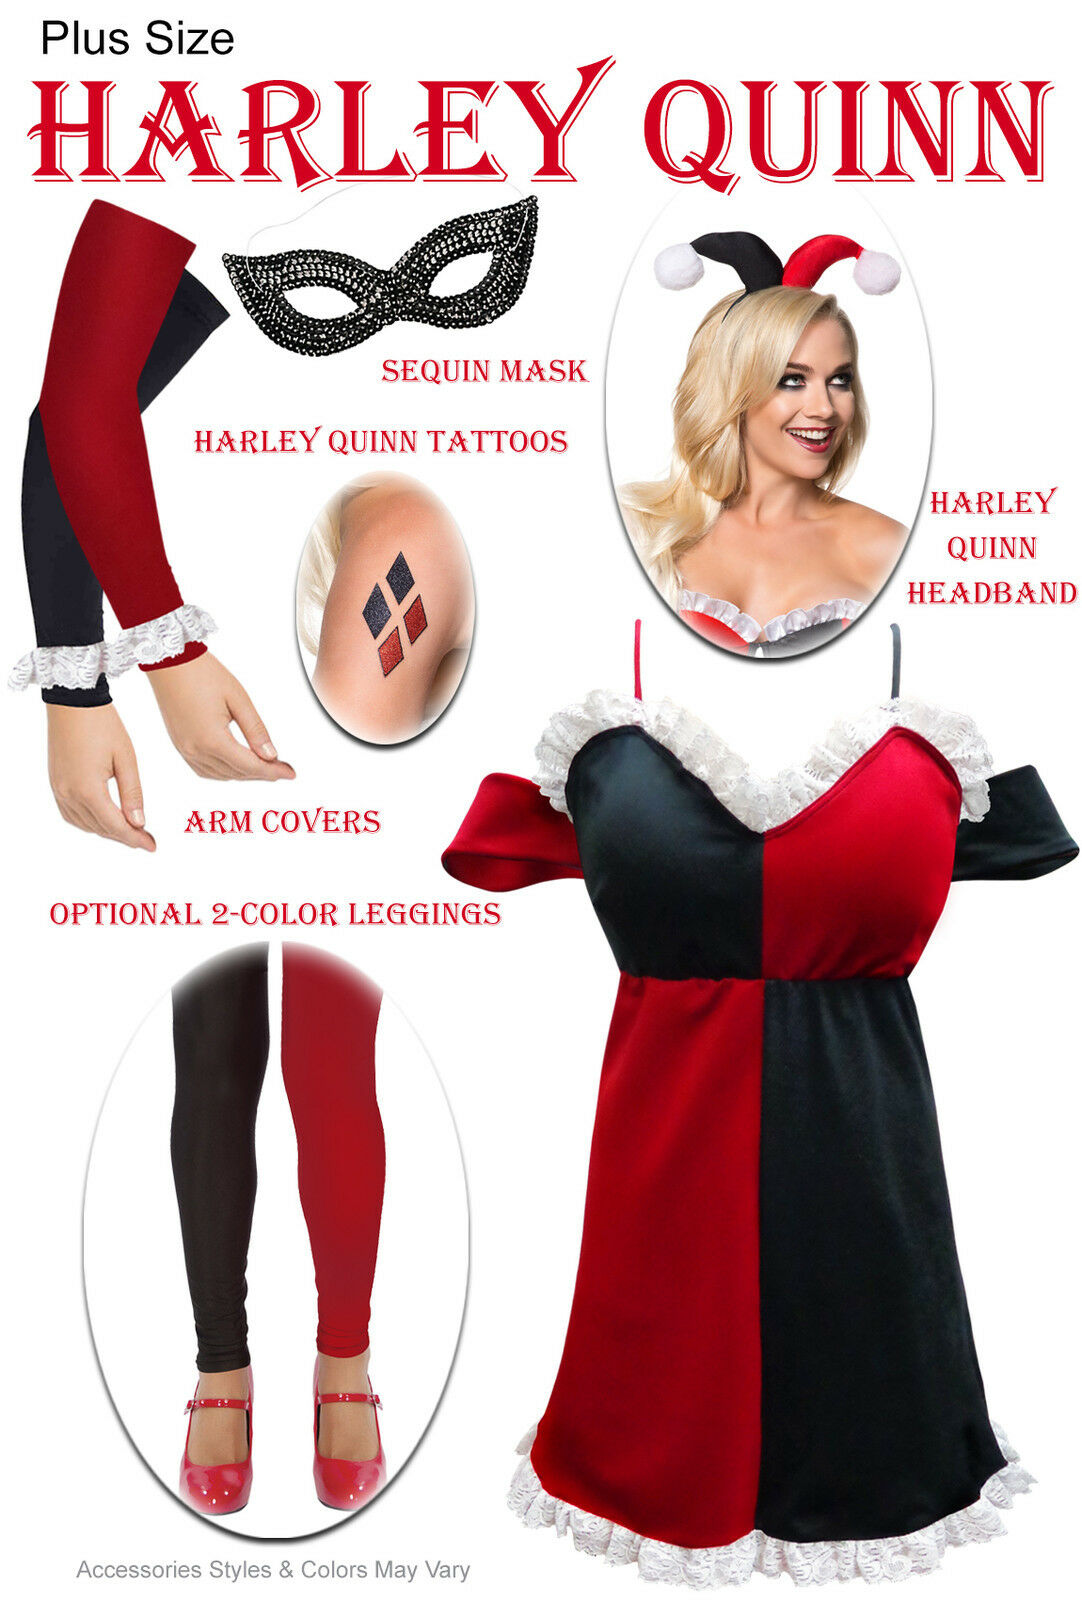 Harley Quinn Plus Size Halloween Costume Costume Costume 0x 1x 2x 3x 4x 5x 6x 7x 8x 9x d030bf